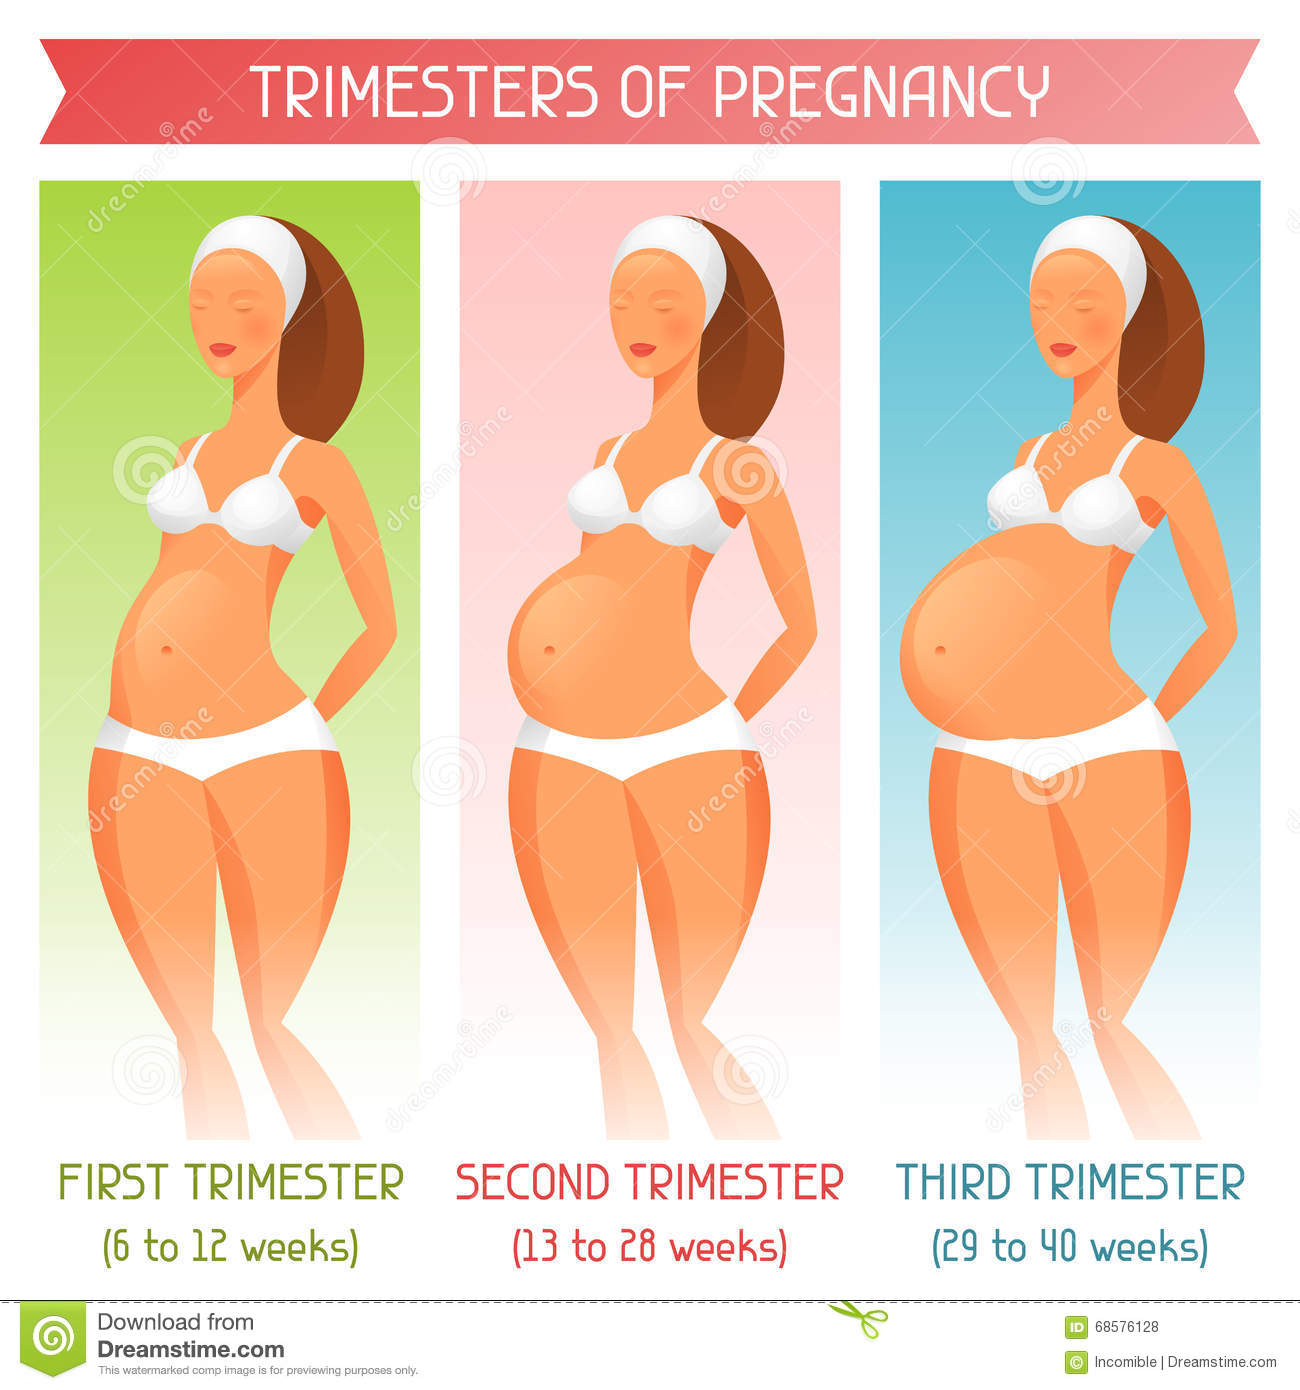 3 Trimesters Of Pregnancy Royalty Free Stock Photos - Image: 4165168